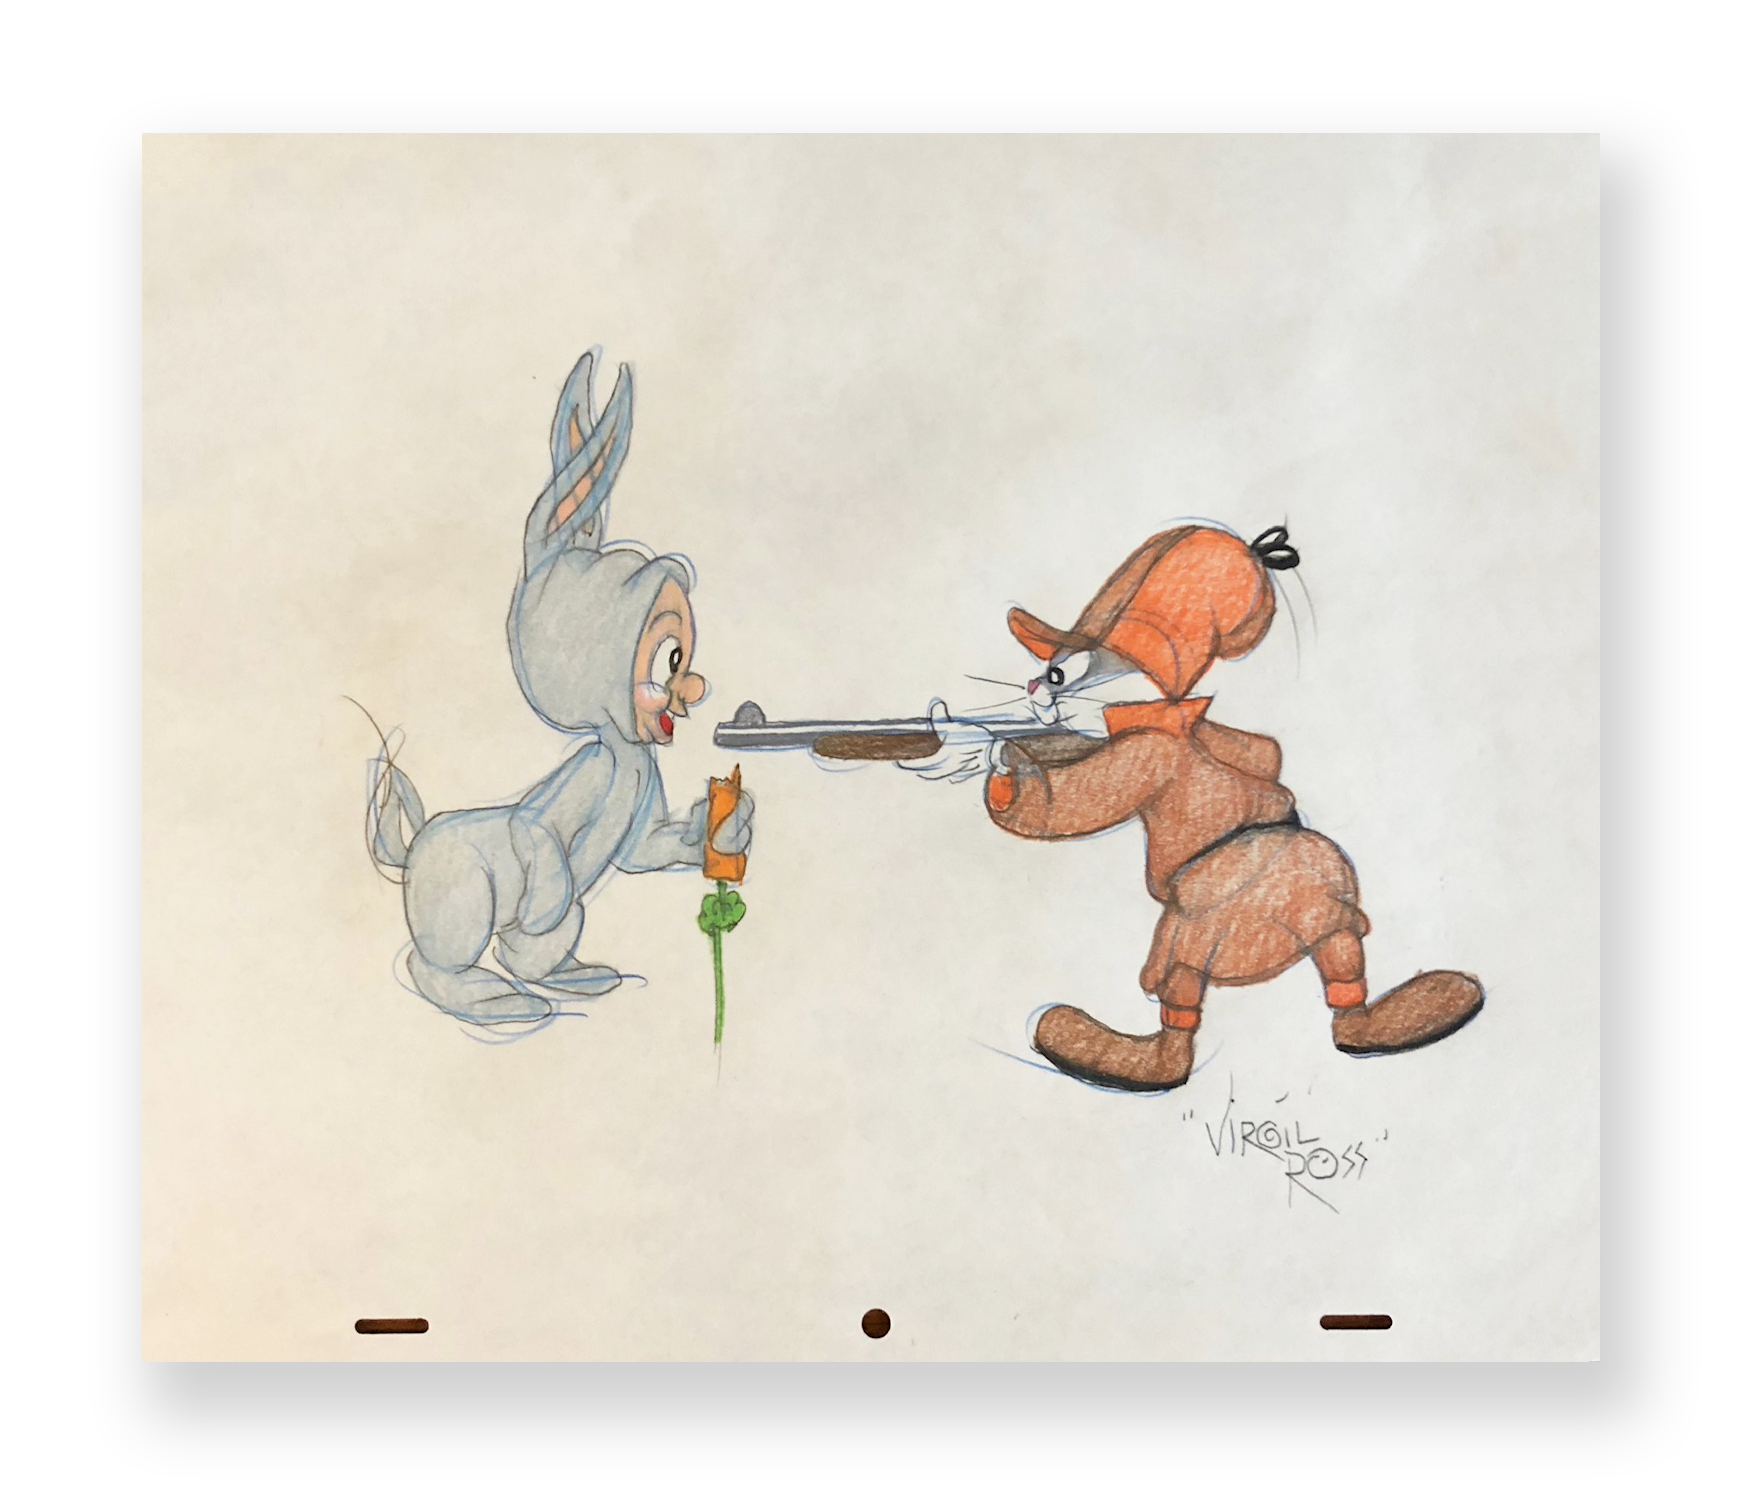 "Virgil Ross  Bugs and Elmer  ""It's Still Rabbit Season""  Original illustration  Color pencil on animation paper  10.5 x 12 inches  Circa 1990"